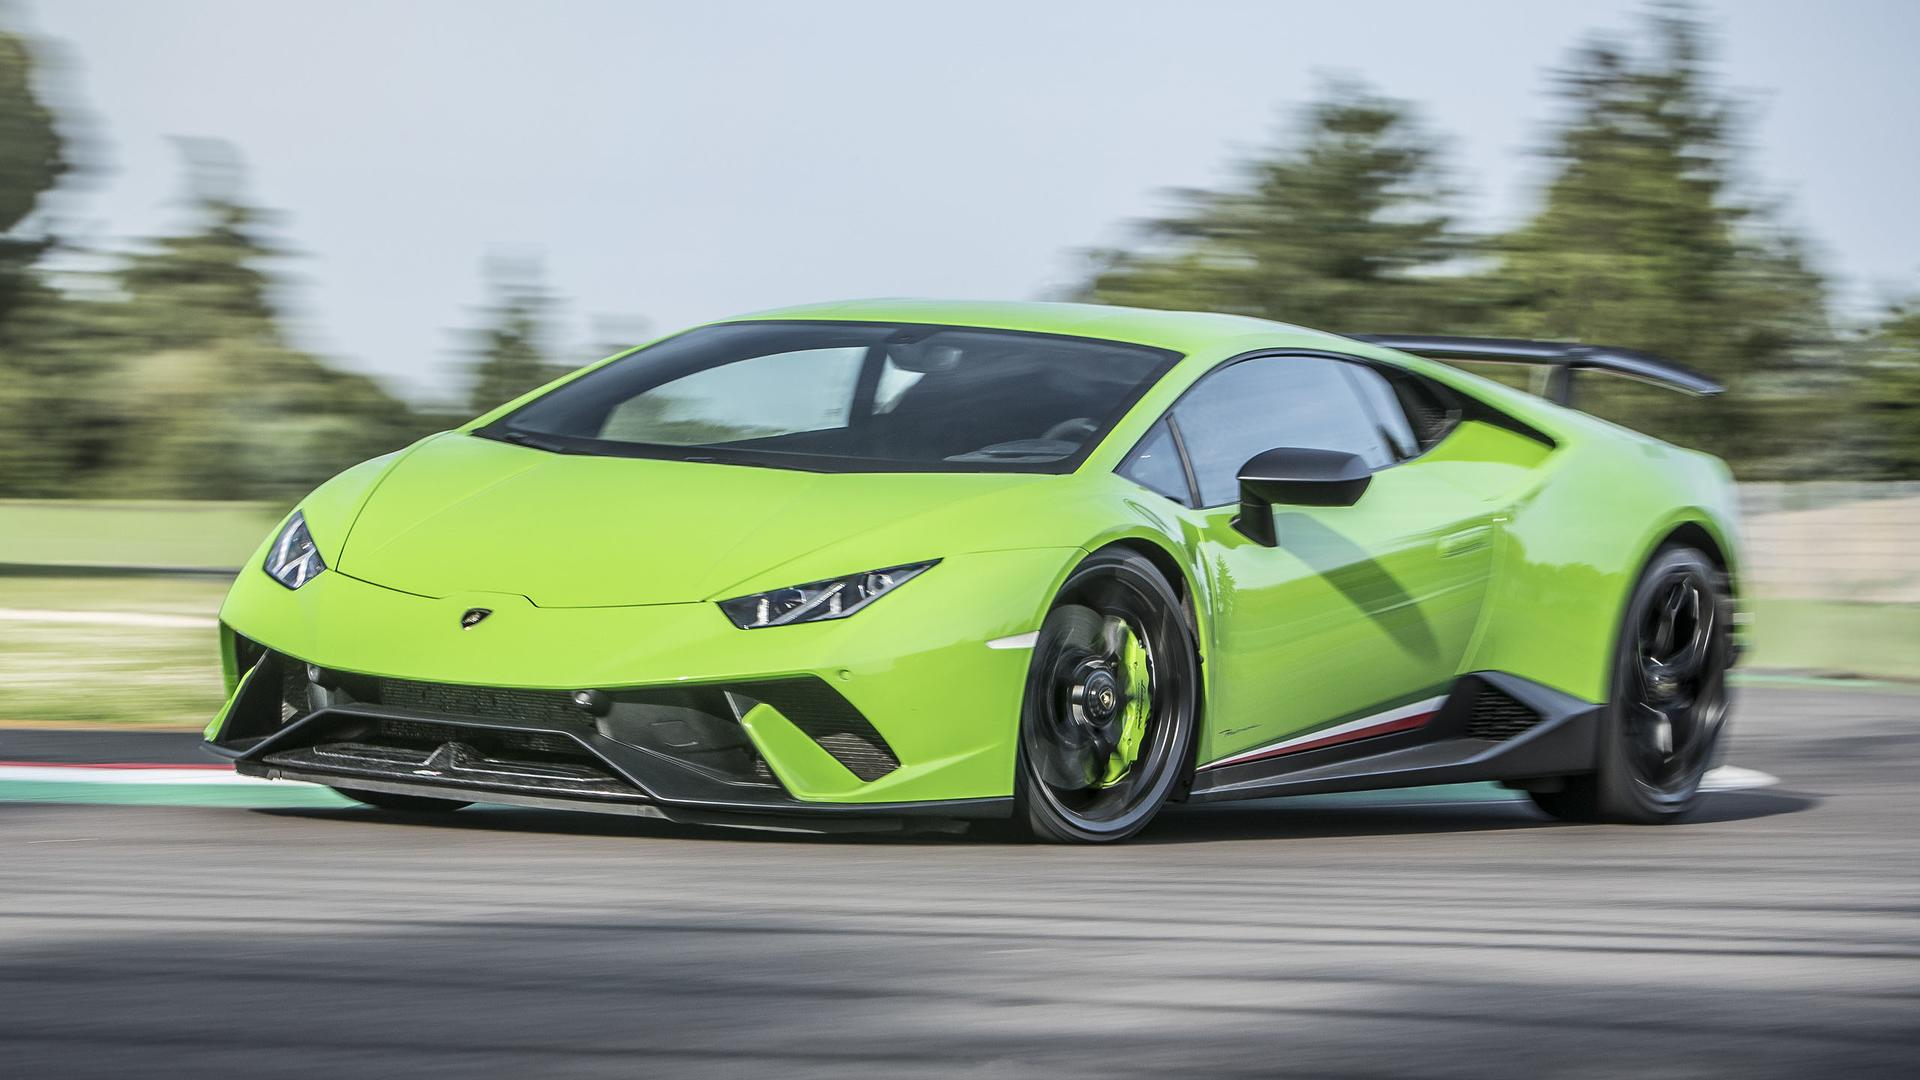 2017 Lamborghini Huracán Performante First Drive Record,Breaking Ability